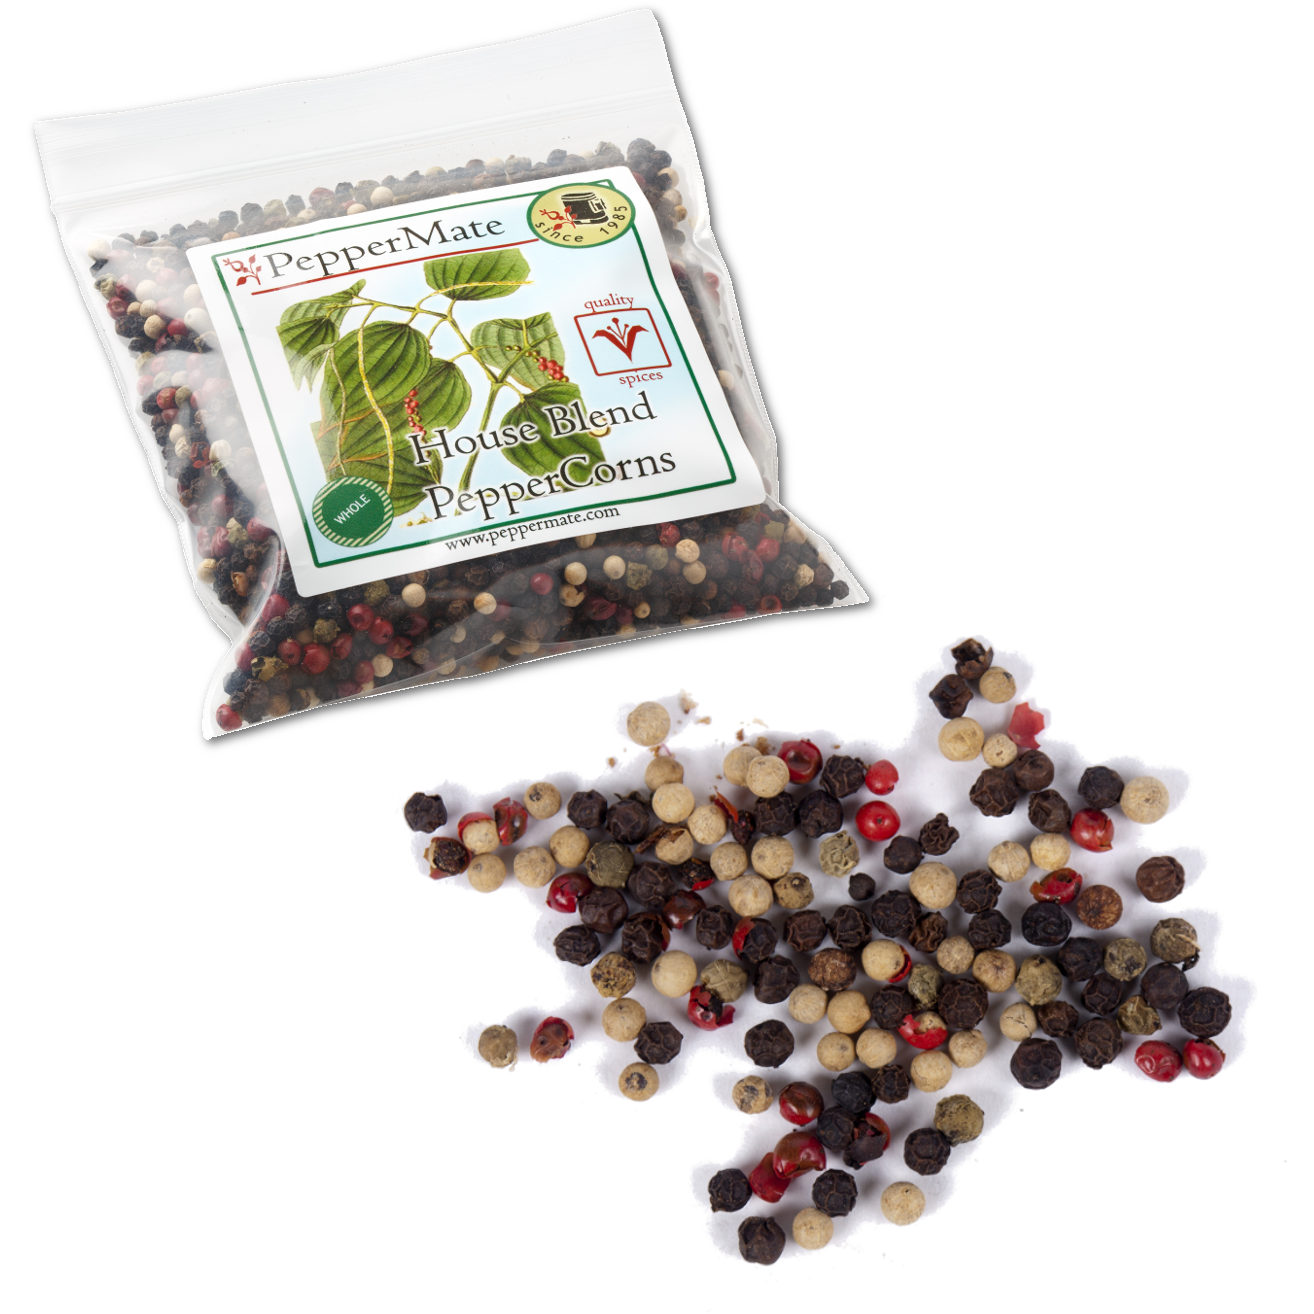 Peppermate - House Blend Peppercorns